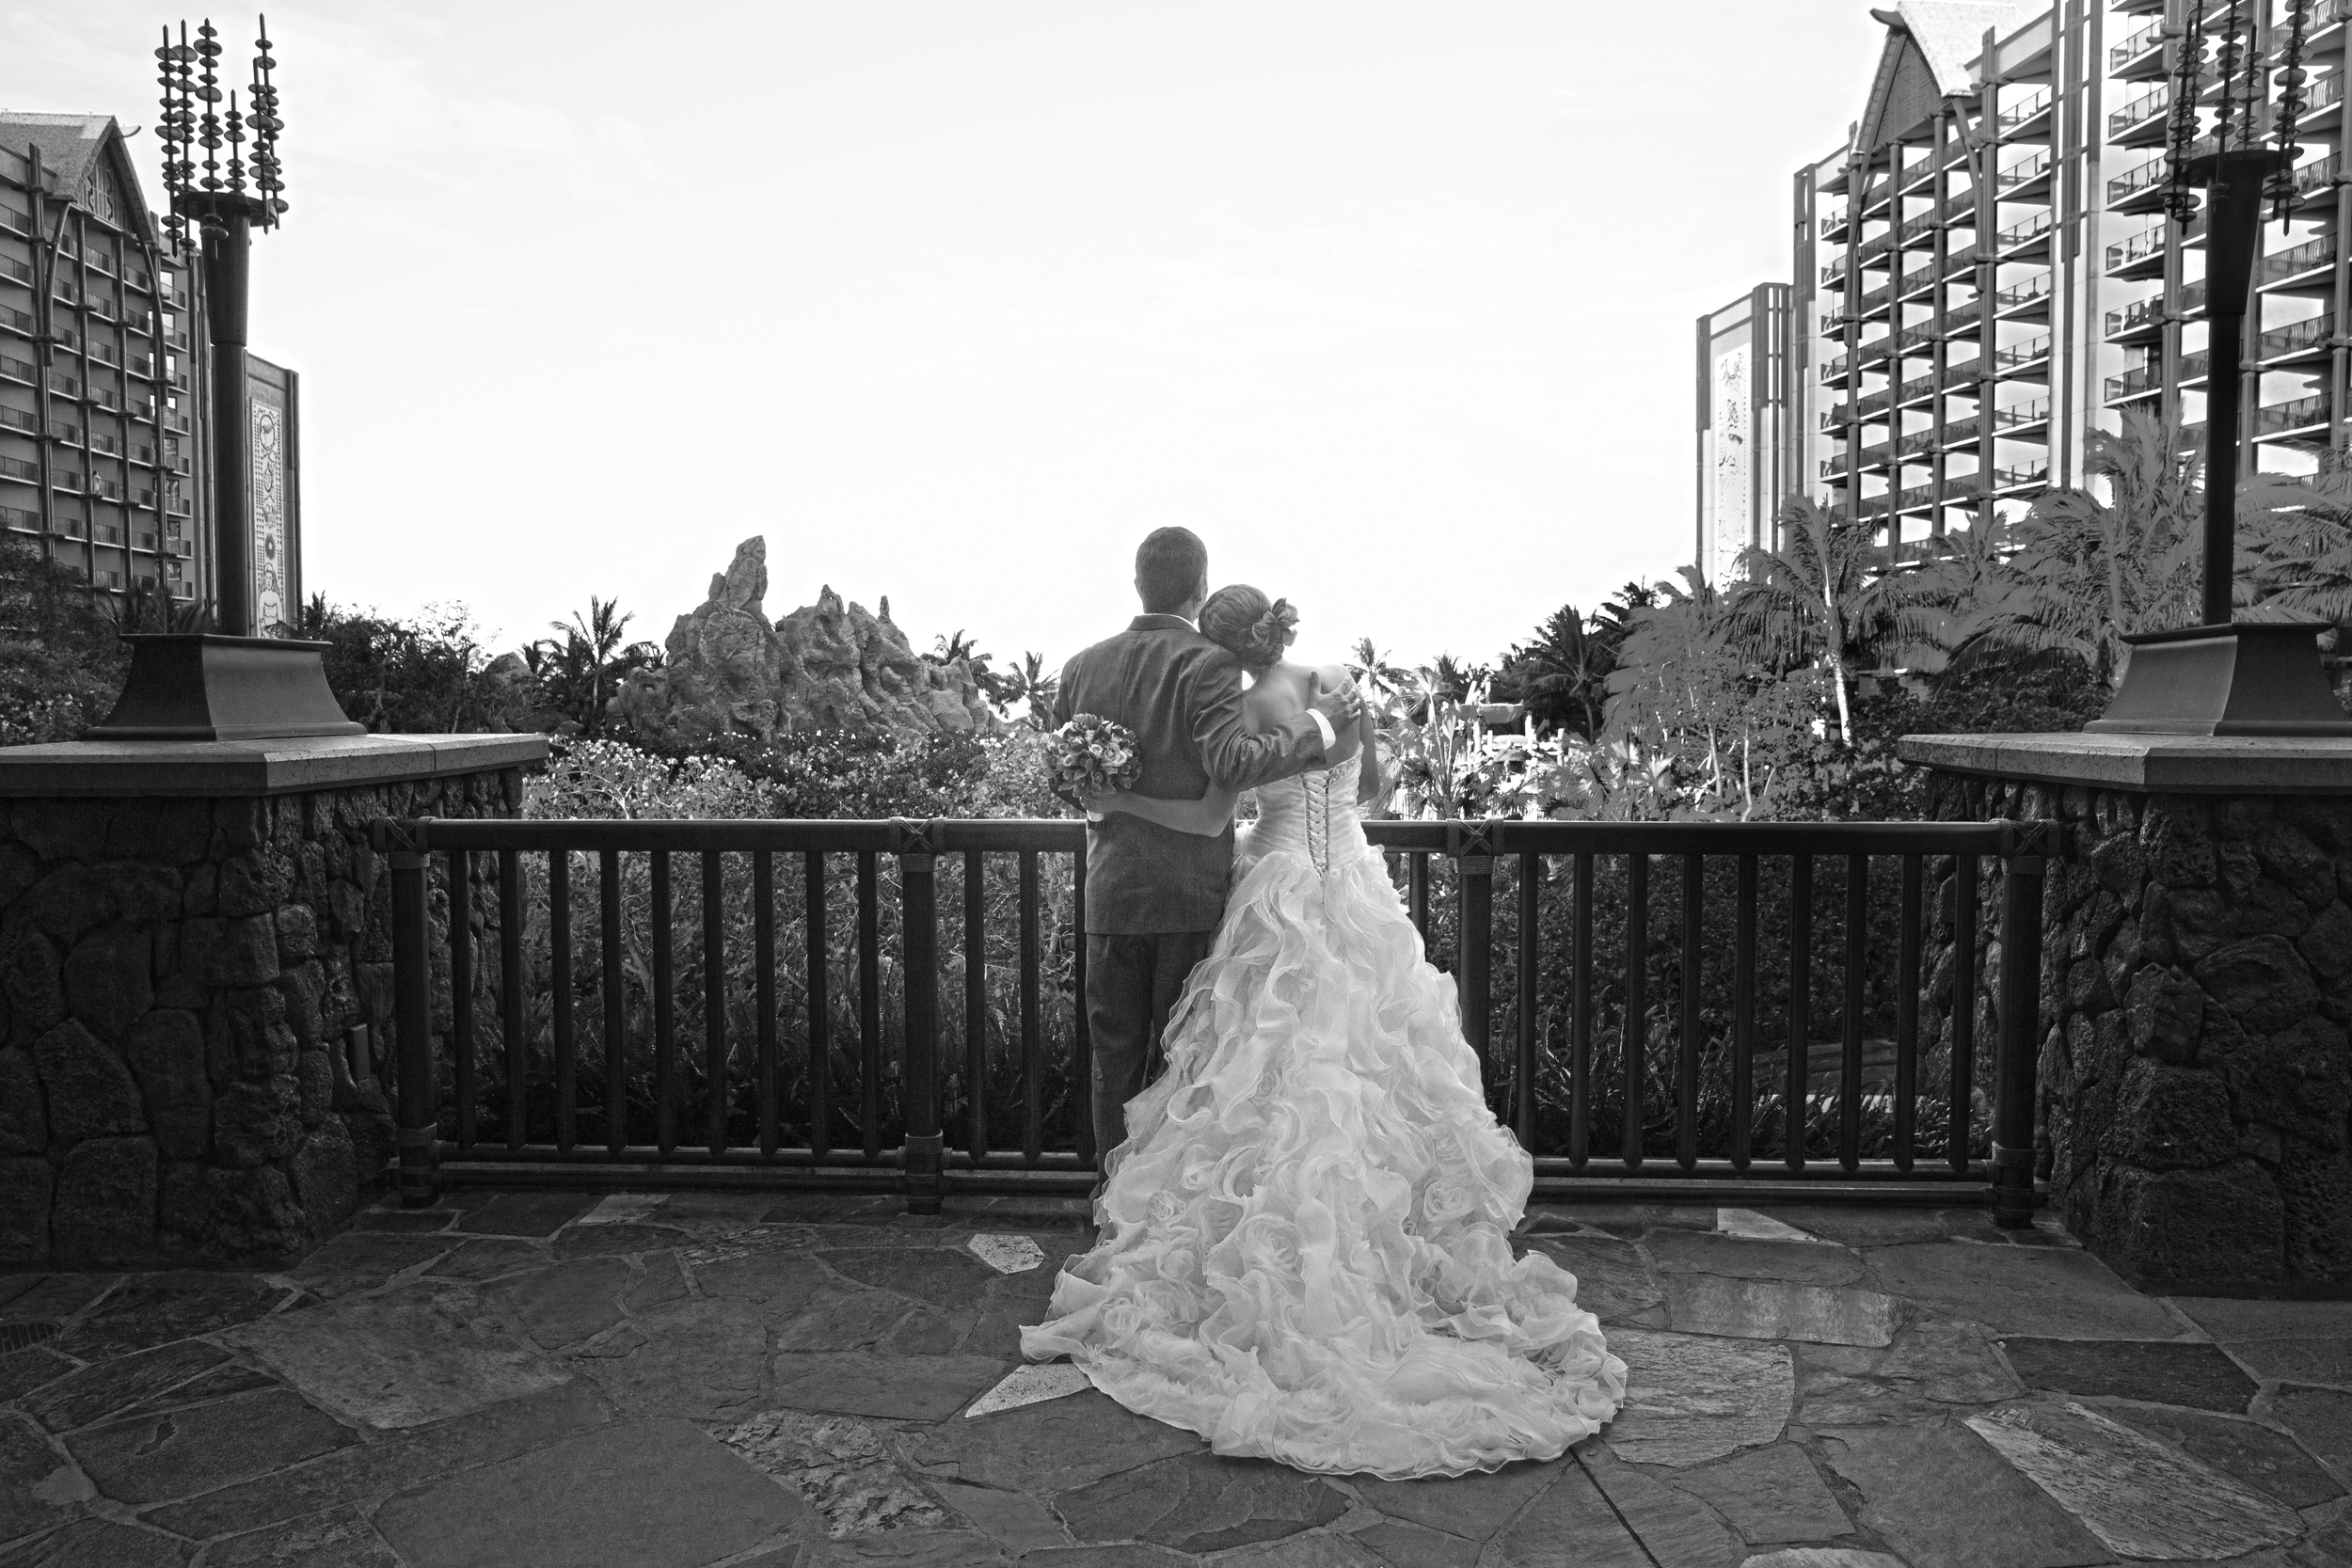 """"""" Bianca Photography  does amazing work! I had the privilege to see Grant Gomes work at my best friend's wedding a year before we had ours at  Aulani . Bianca was our photographer for our wedding and for wedding portraits the morning after and she was so fun to work with! She totally got into our goofy groove and we got a great mix of beautiful, fun, traditional, classy, and silly photographs! She was super easy to work with and made me and my husband very relaxed and confident in taking the photos. She also corralled our guests very quickly so that we got the most out of our photography time... something I really appreciated!""""   Location:  Aulani, A Disney Resort & Spa"""